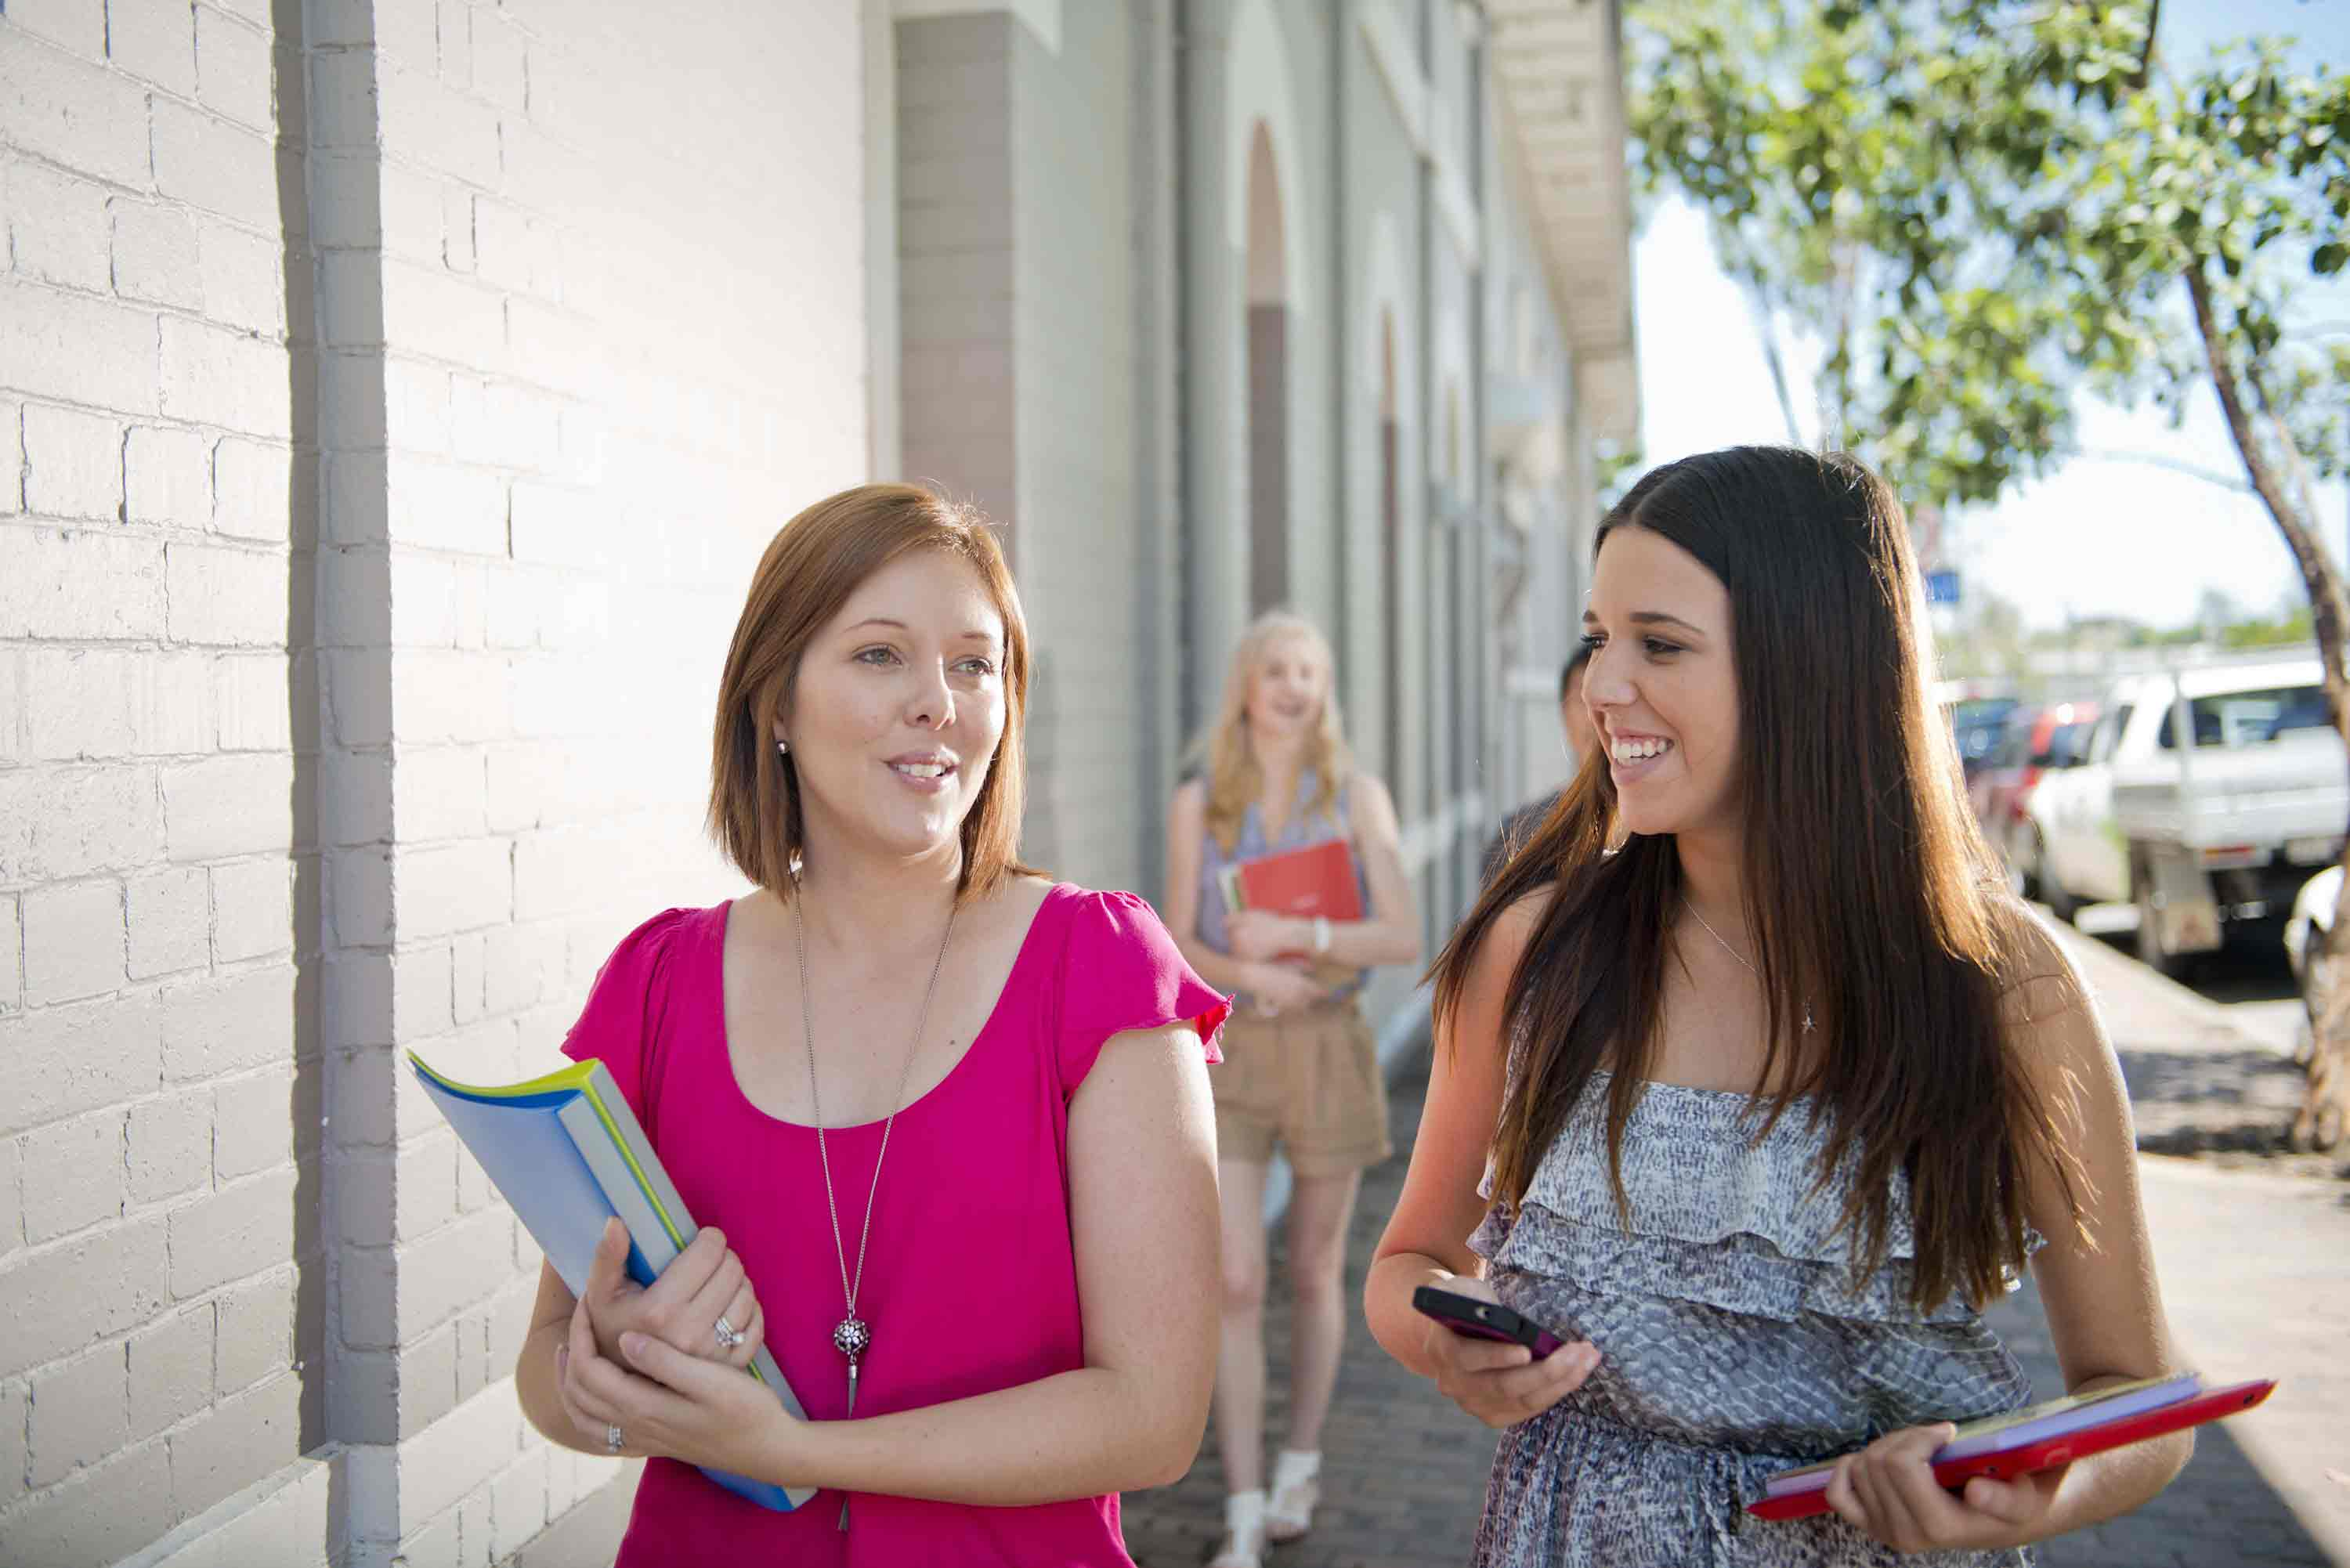 experience@griffith, Course and Teaching Surveys open to students